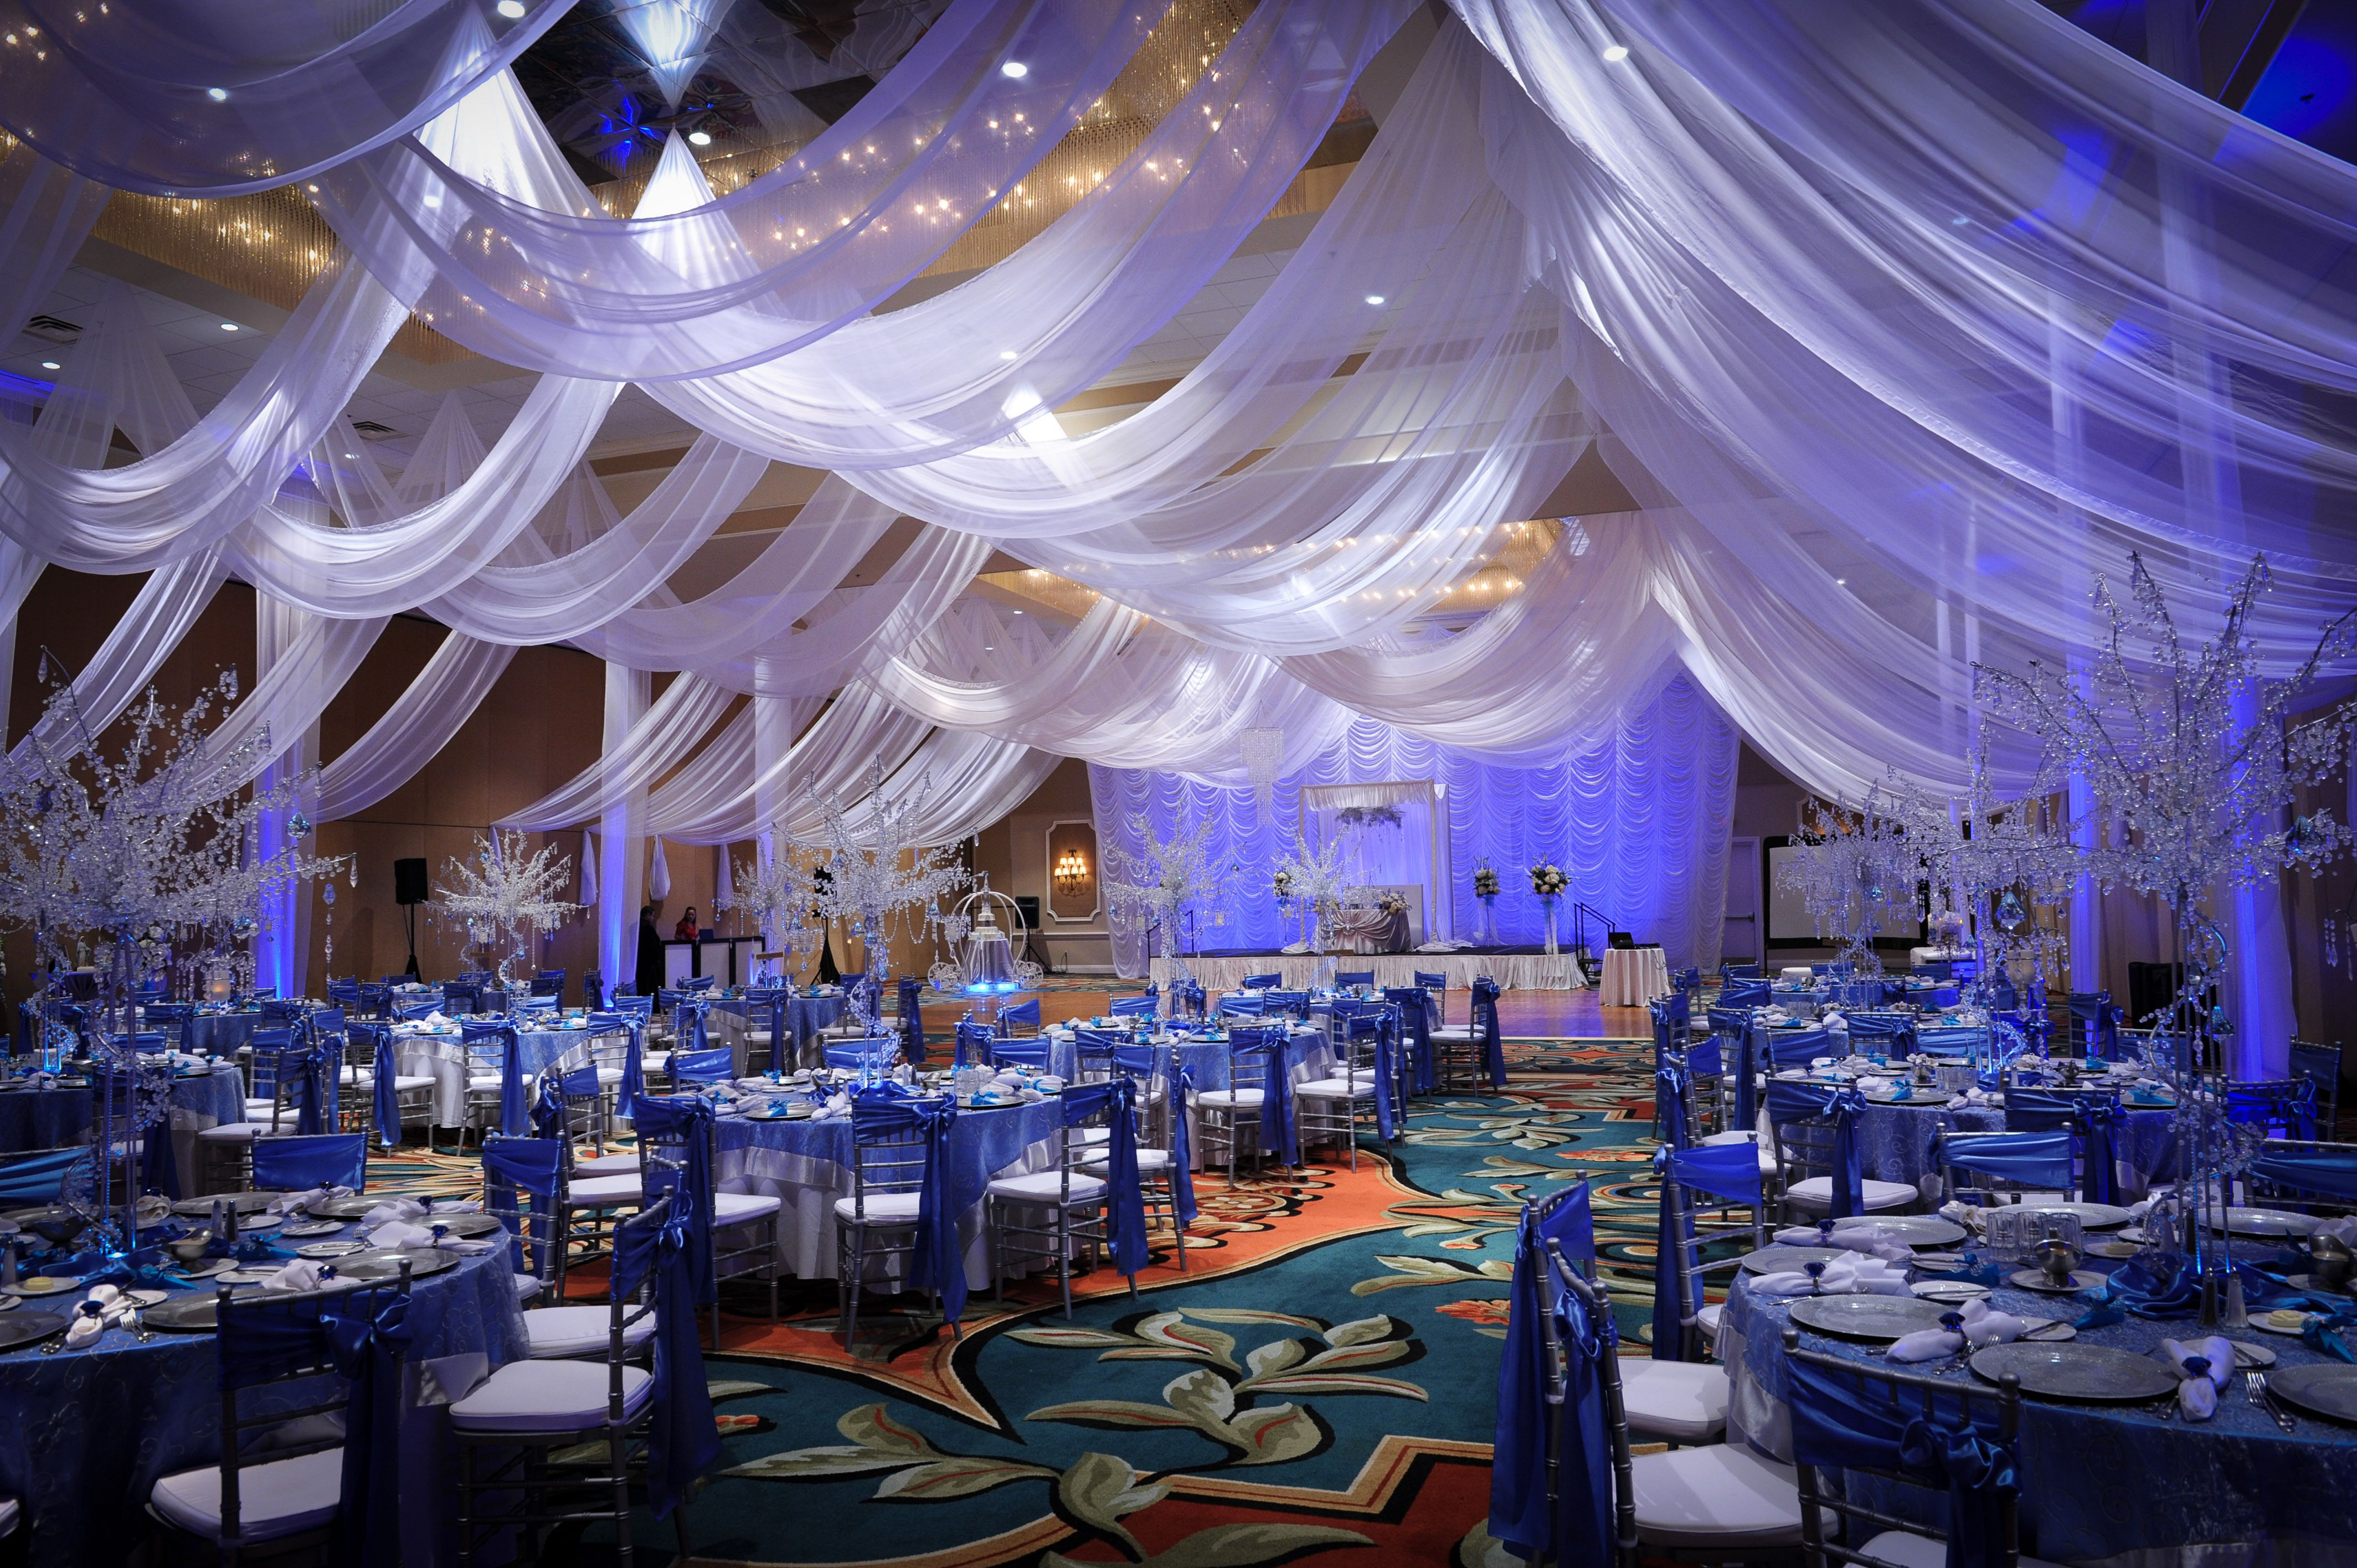 wedding supplies Some of that must be considered in wedding decorations wedding accessories wedding decoration ideas wedding pictures wedding reception ideas